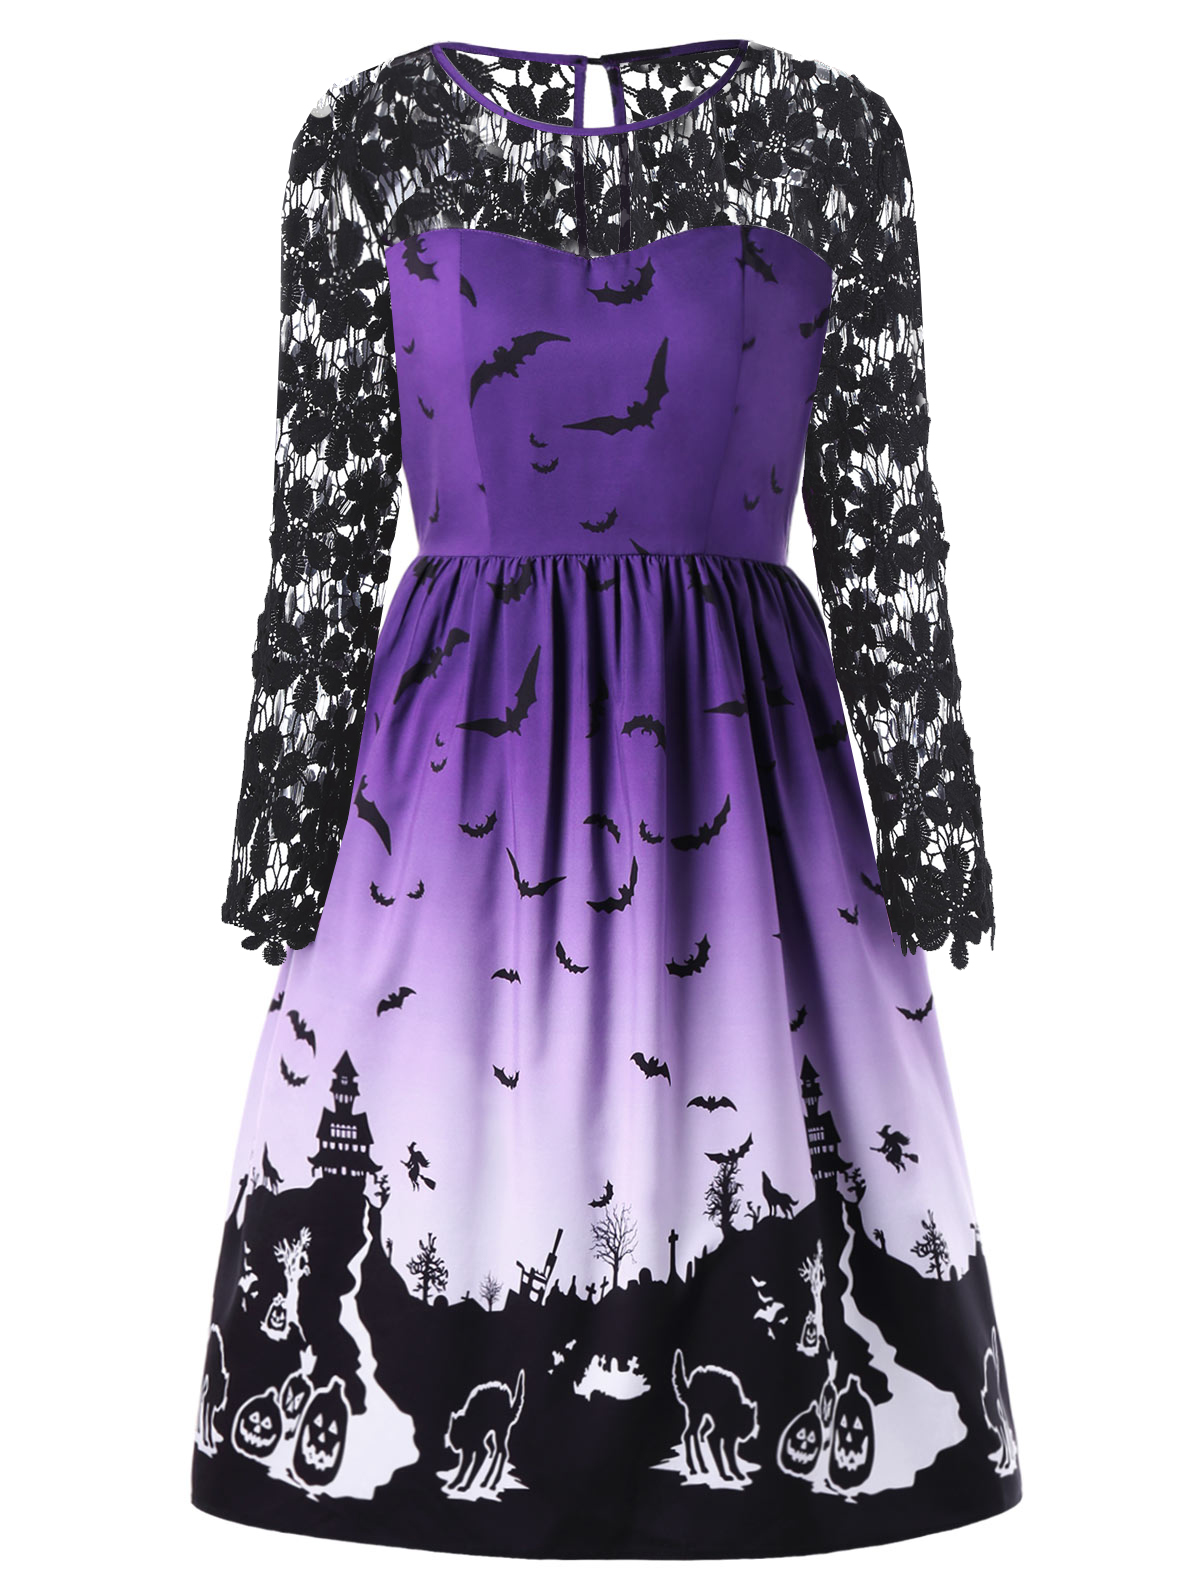 Gamiss Women Autumn Spring Dress Halloween Big Size Lace Panel Bat ...